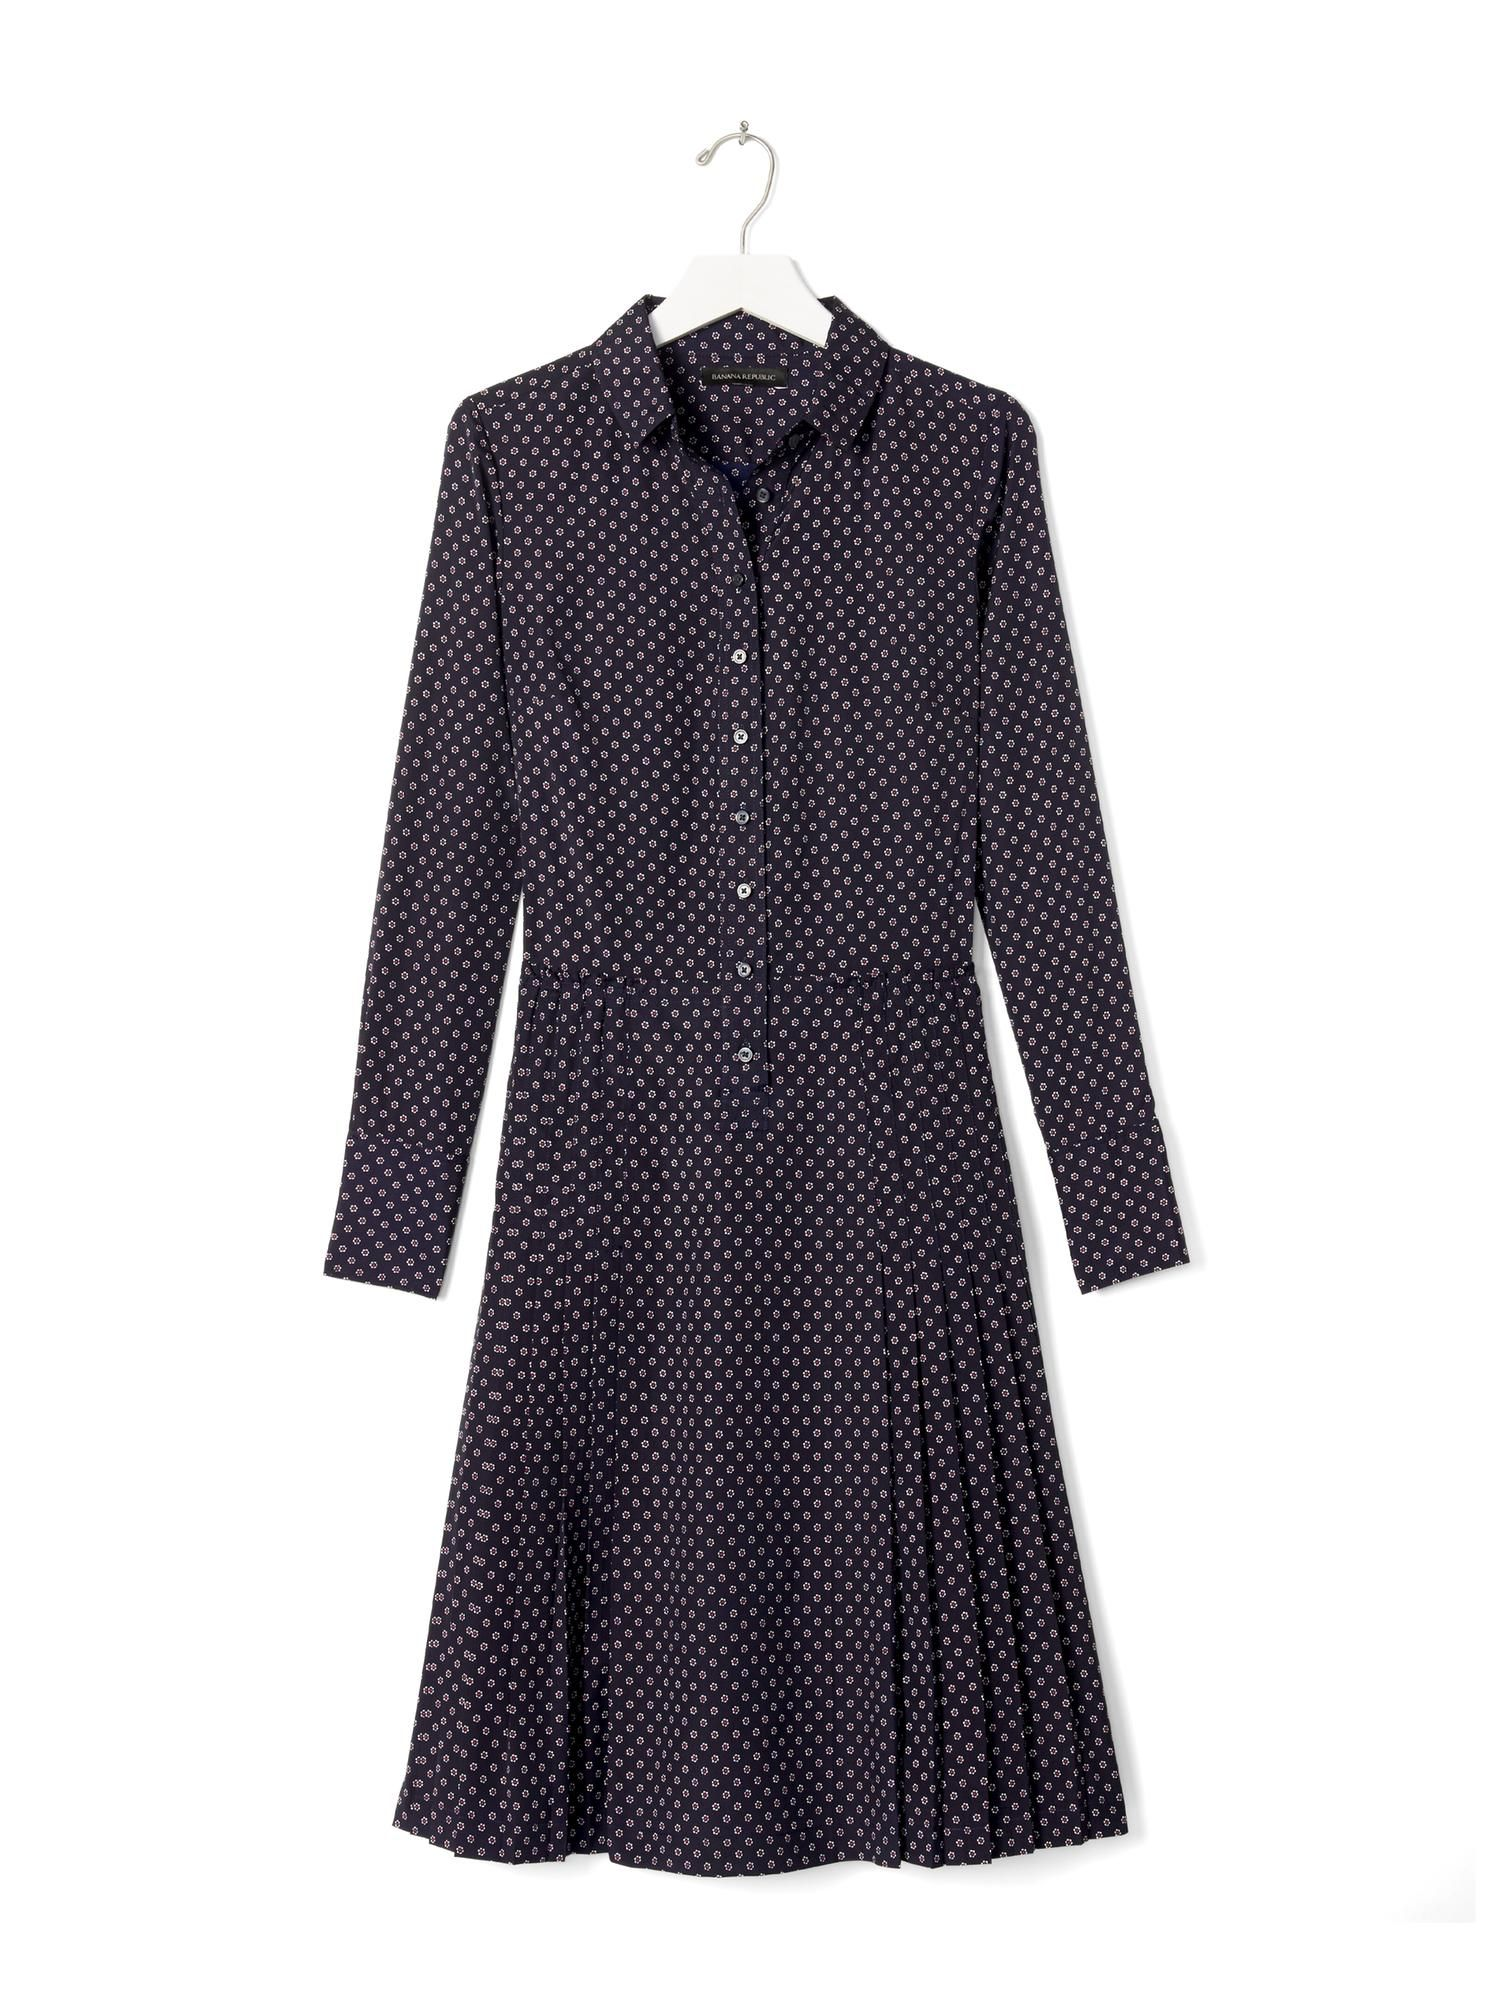 660958e2ffa Pleated Skirt Shirtdress